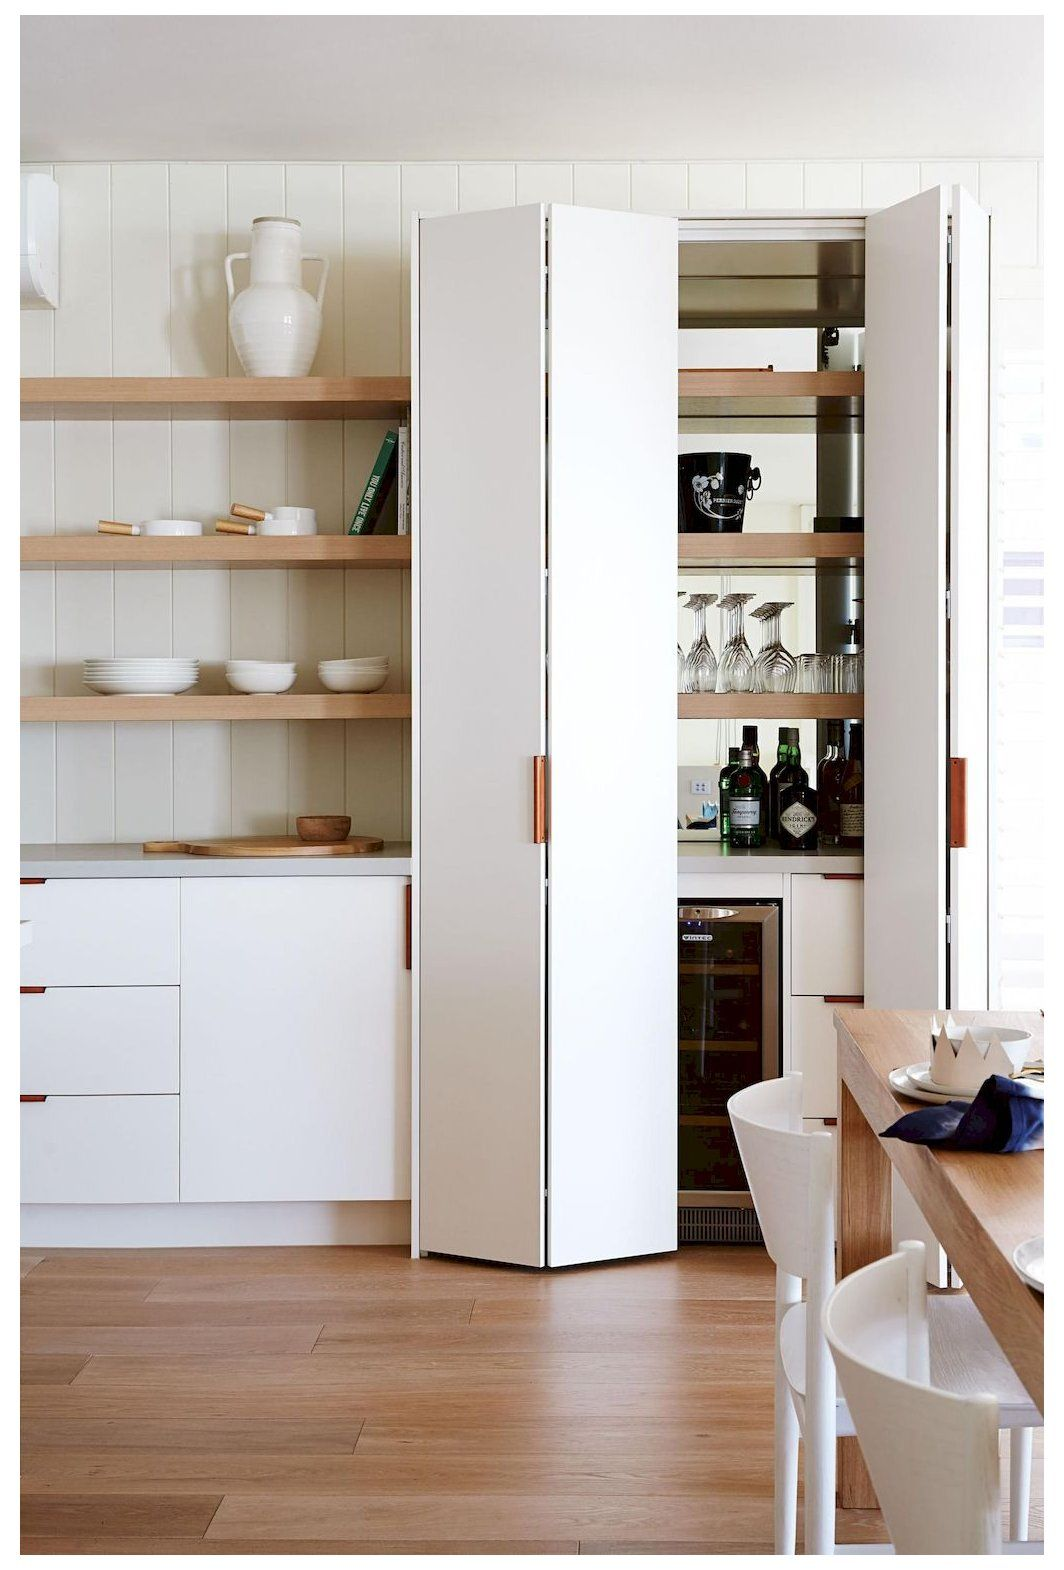 Neat Kitchen Organization and Storage Ideas - Image 9 of 58 #kitchenstorageideas